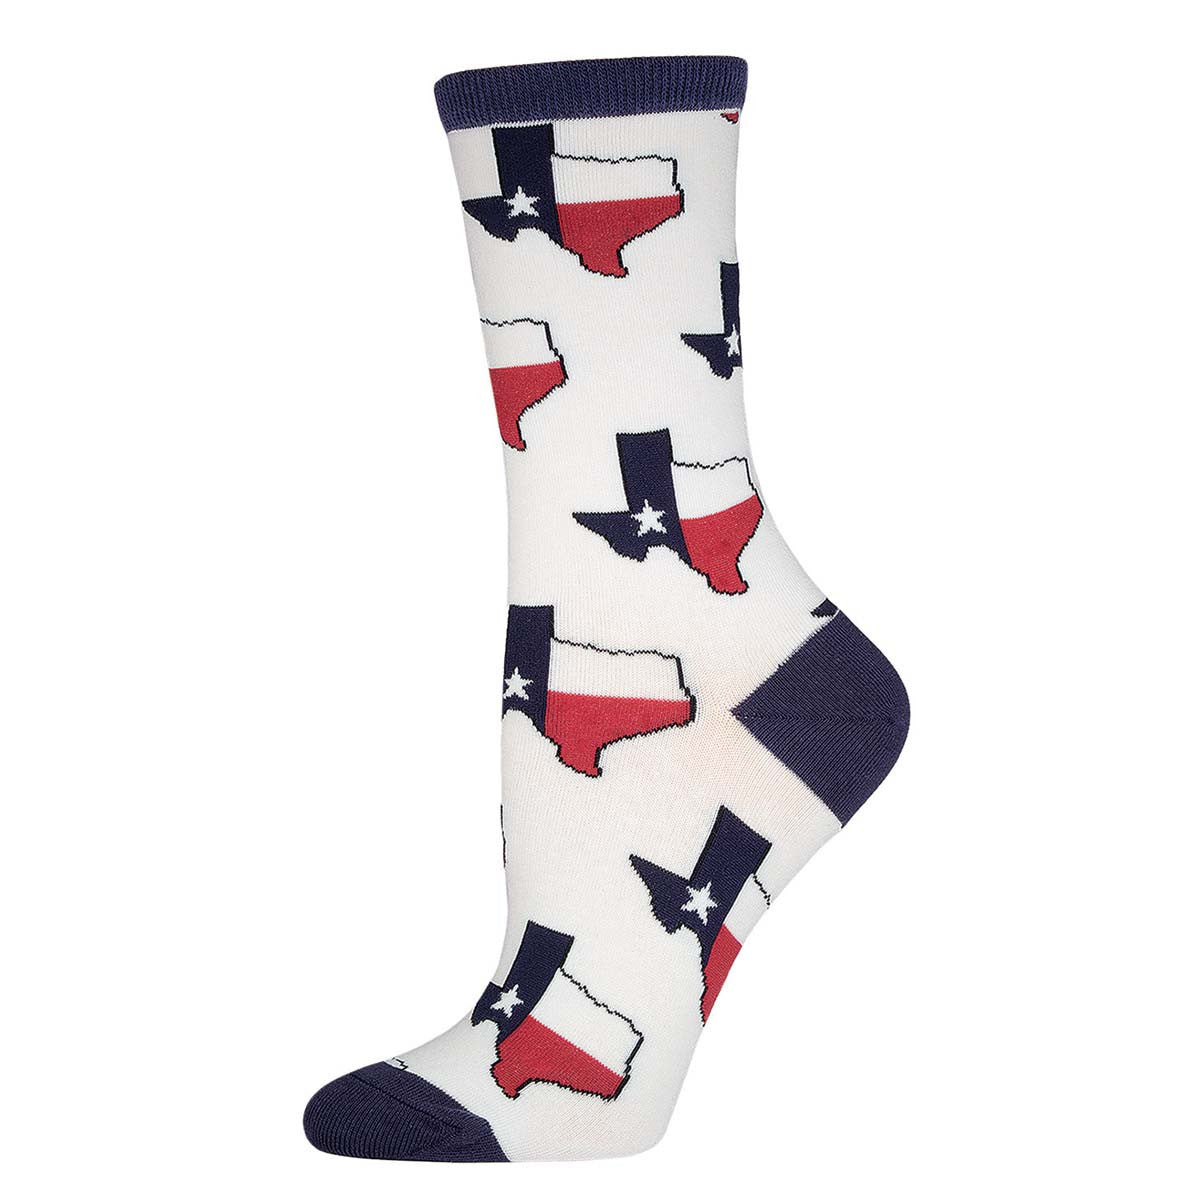 Texas SockSmith Womens Crew Socks